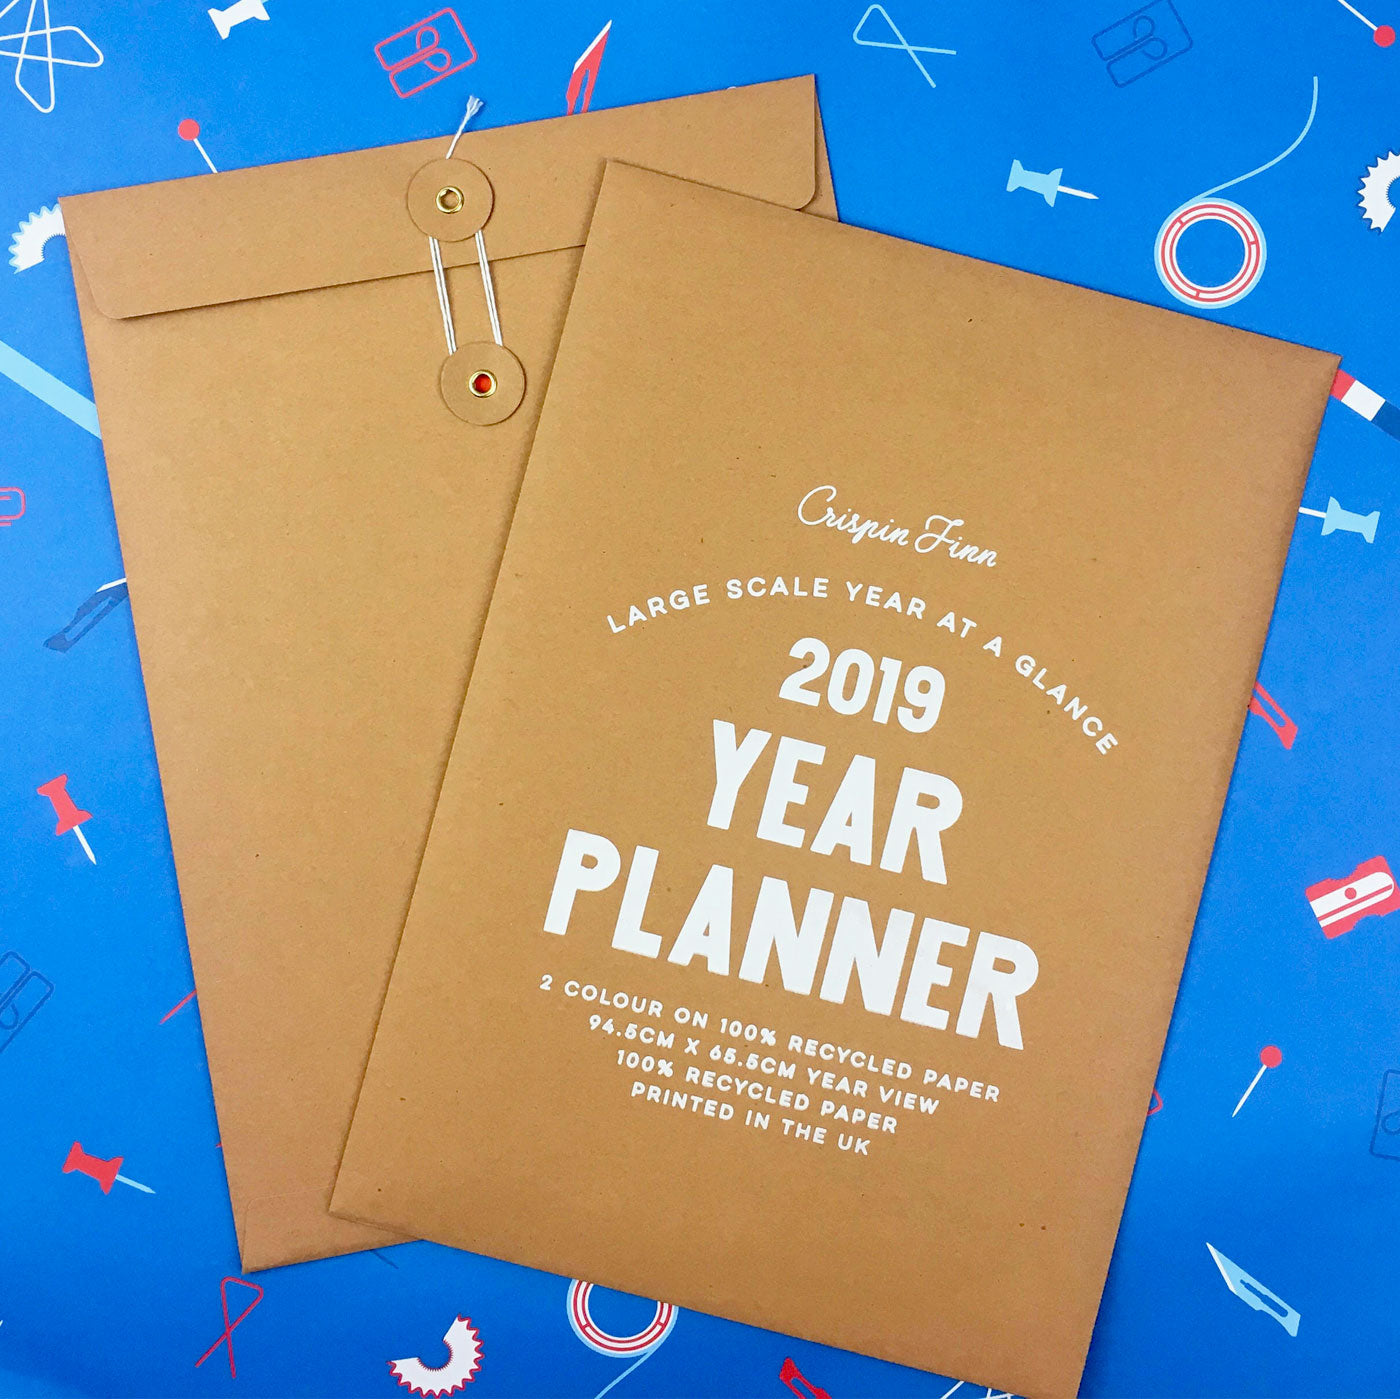 Crispin Finn Wall Planner 2019 (last few copies!)